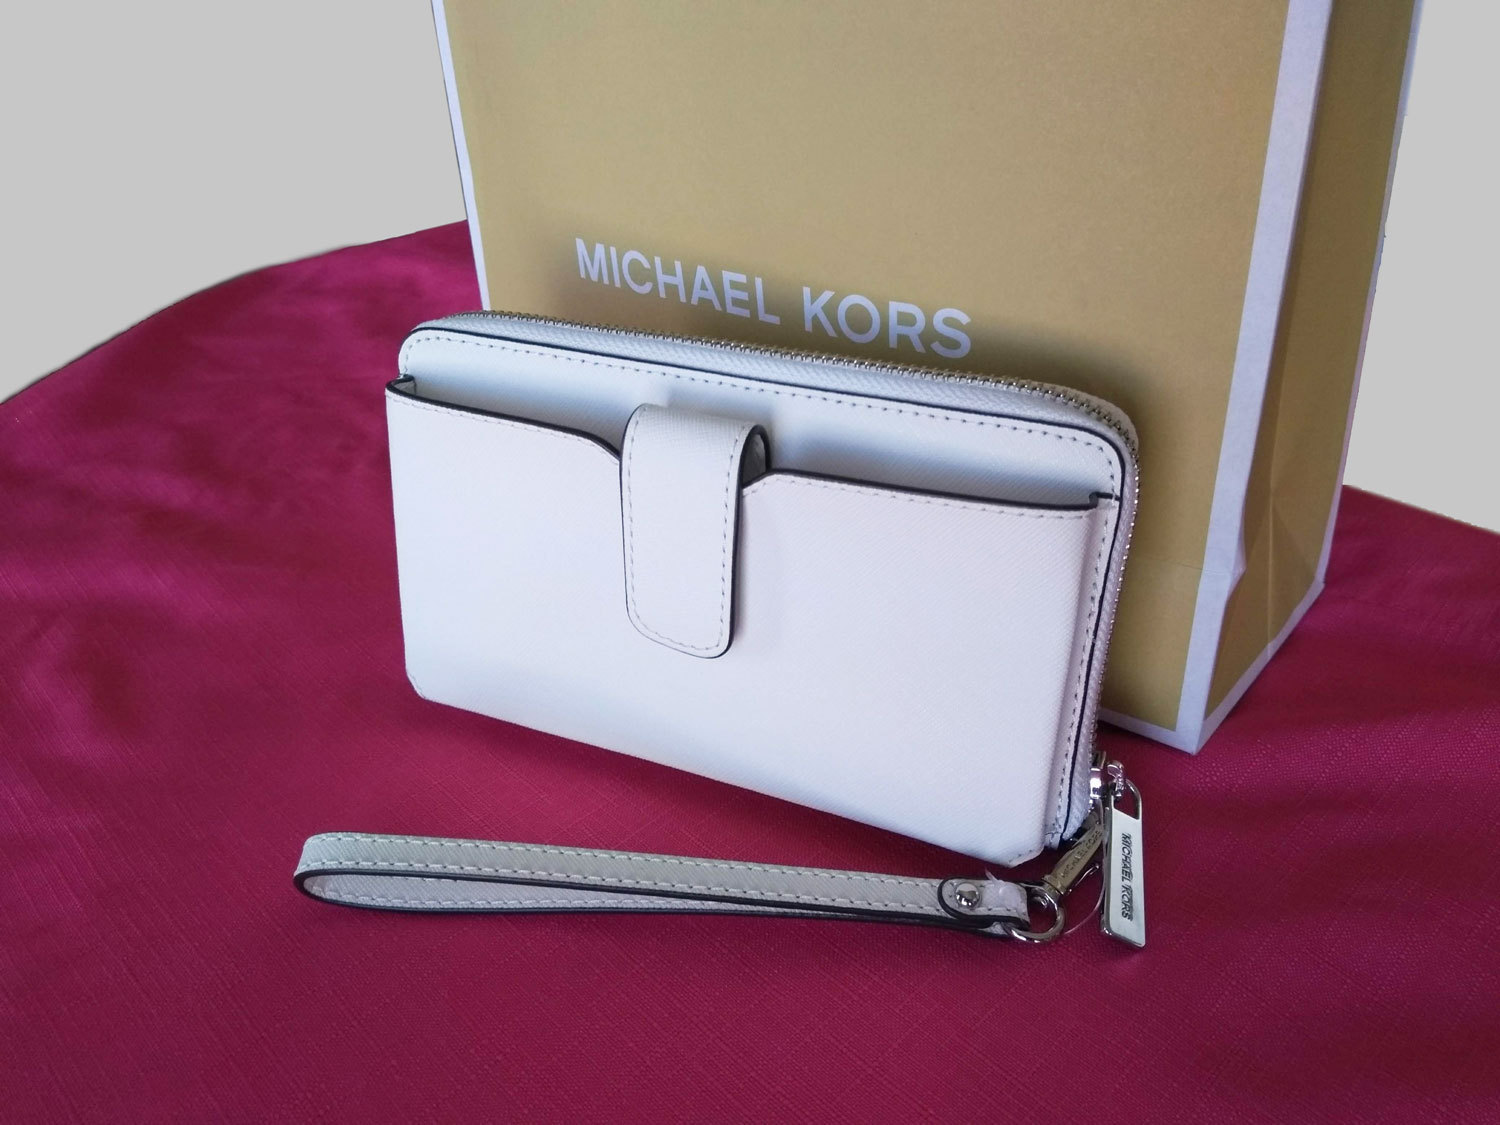 Michael Kors MICHAEL KORS MD ZA PHONE HOLDER WALLET